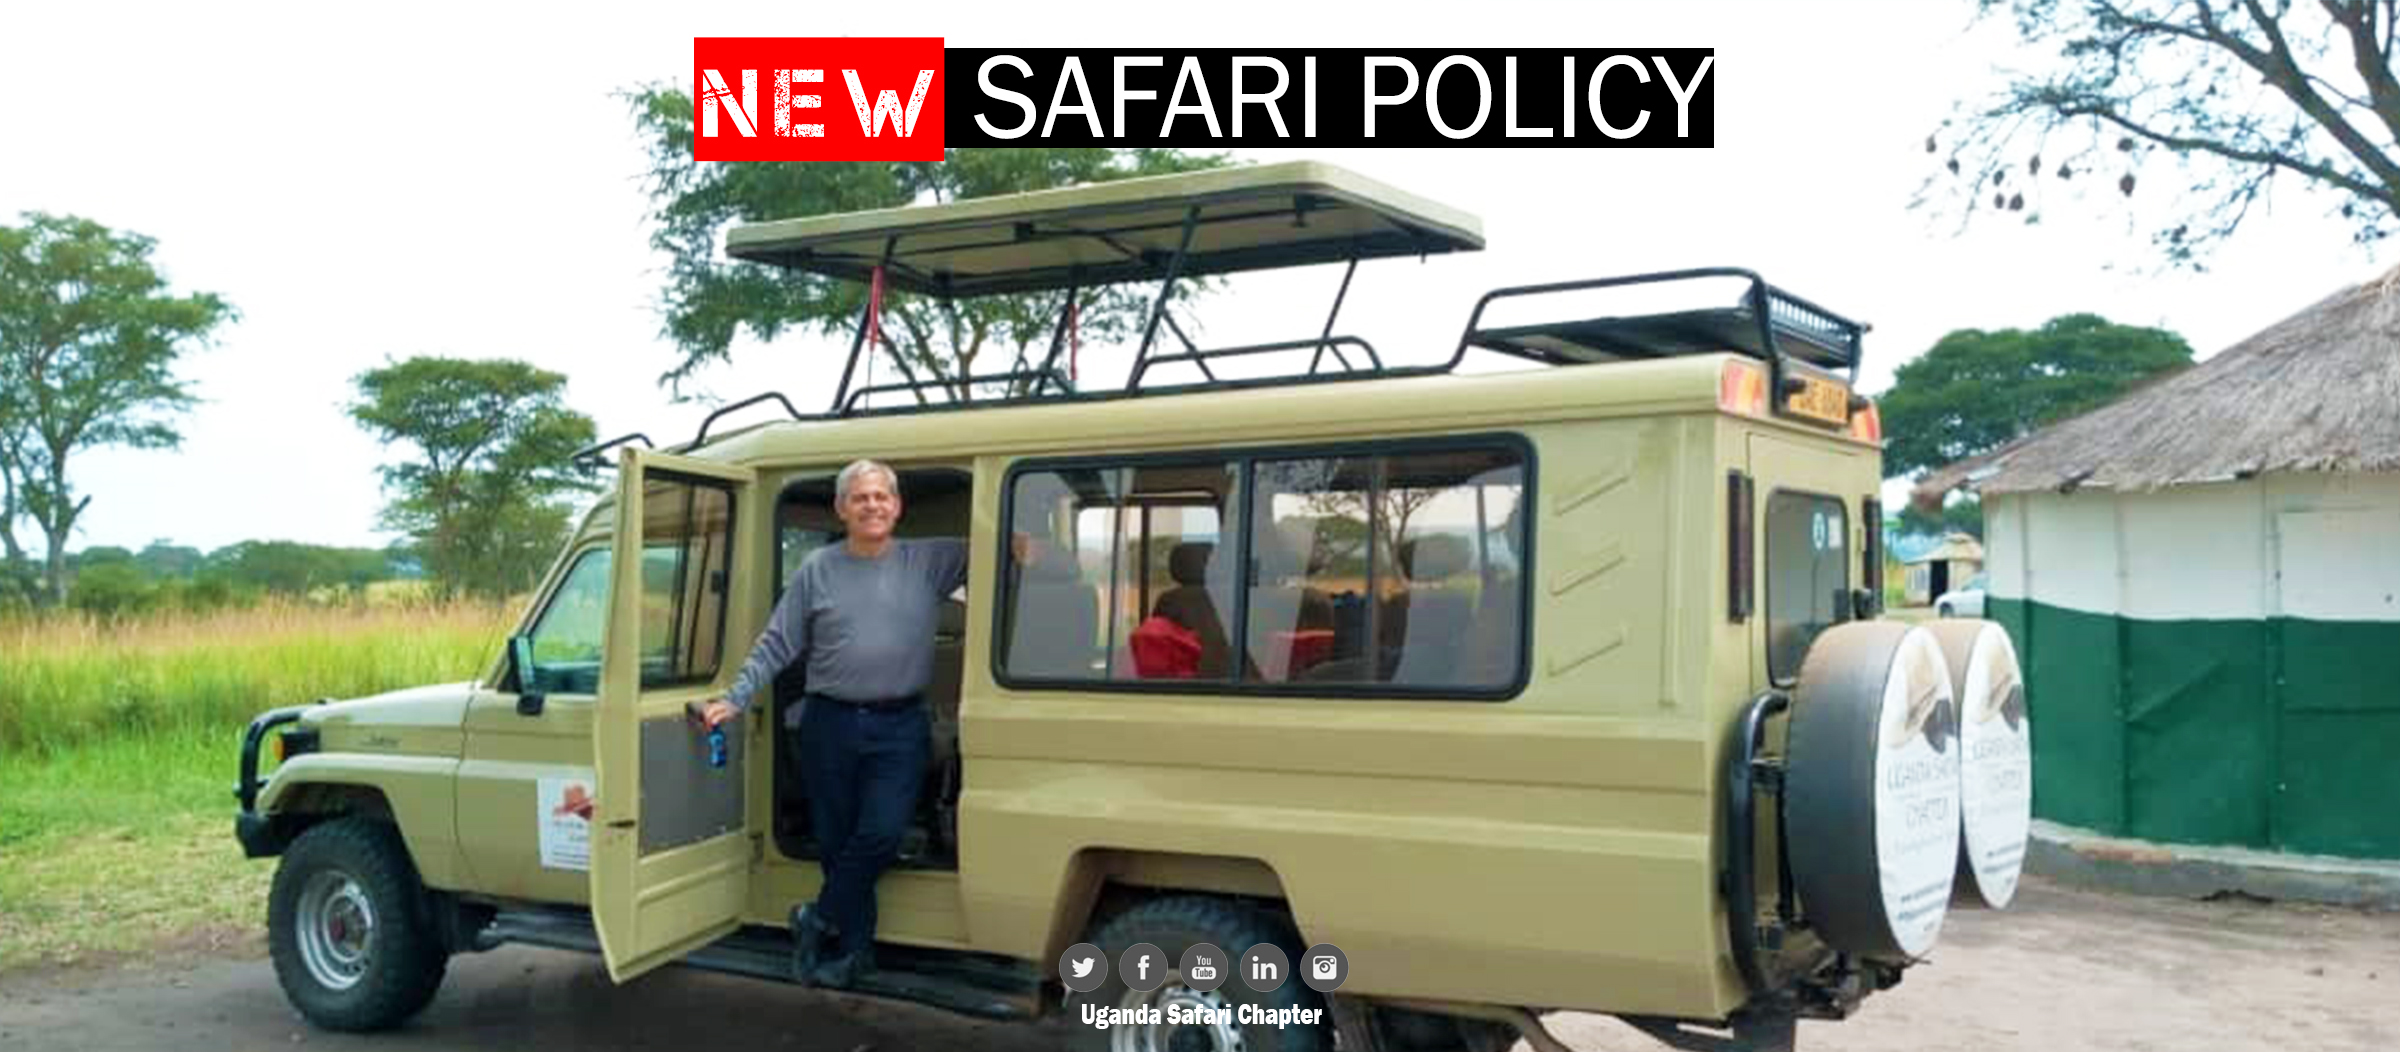 Ugandasafarichapter-NewSafariPolicy-4Cs